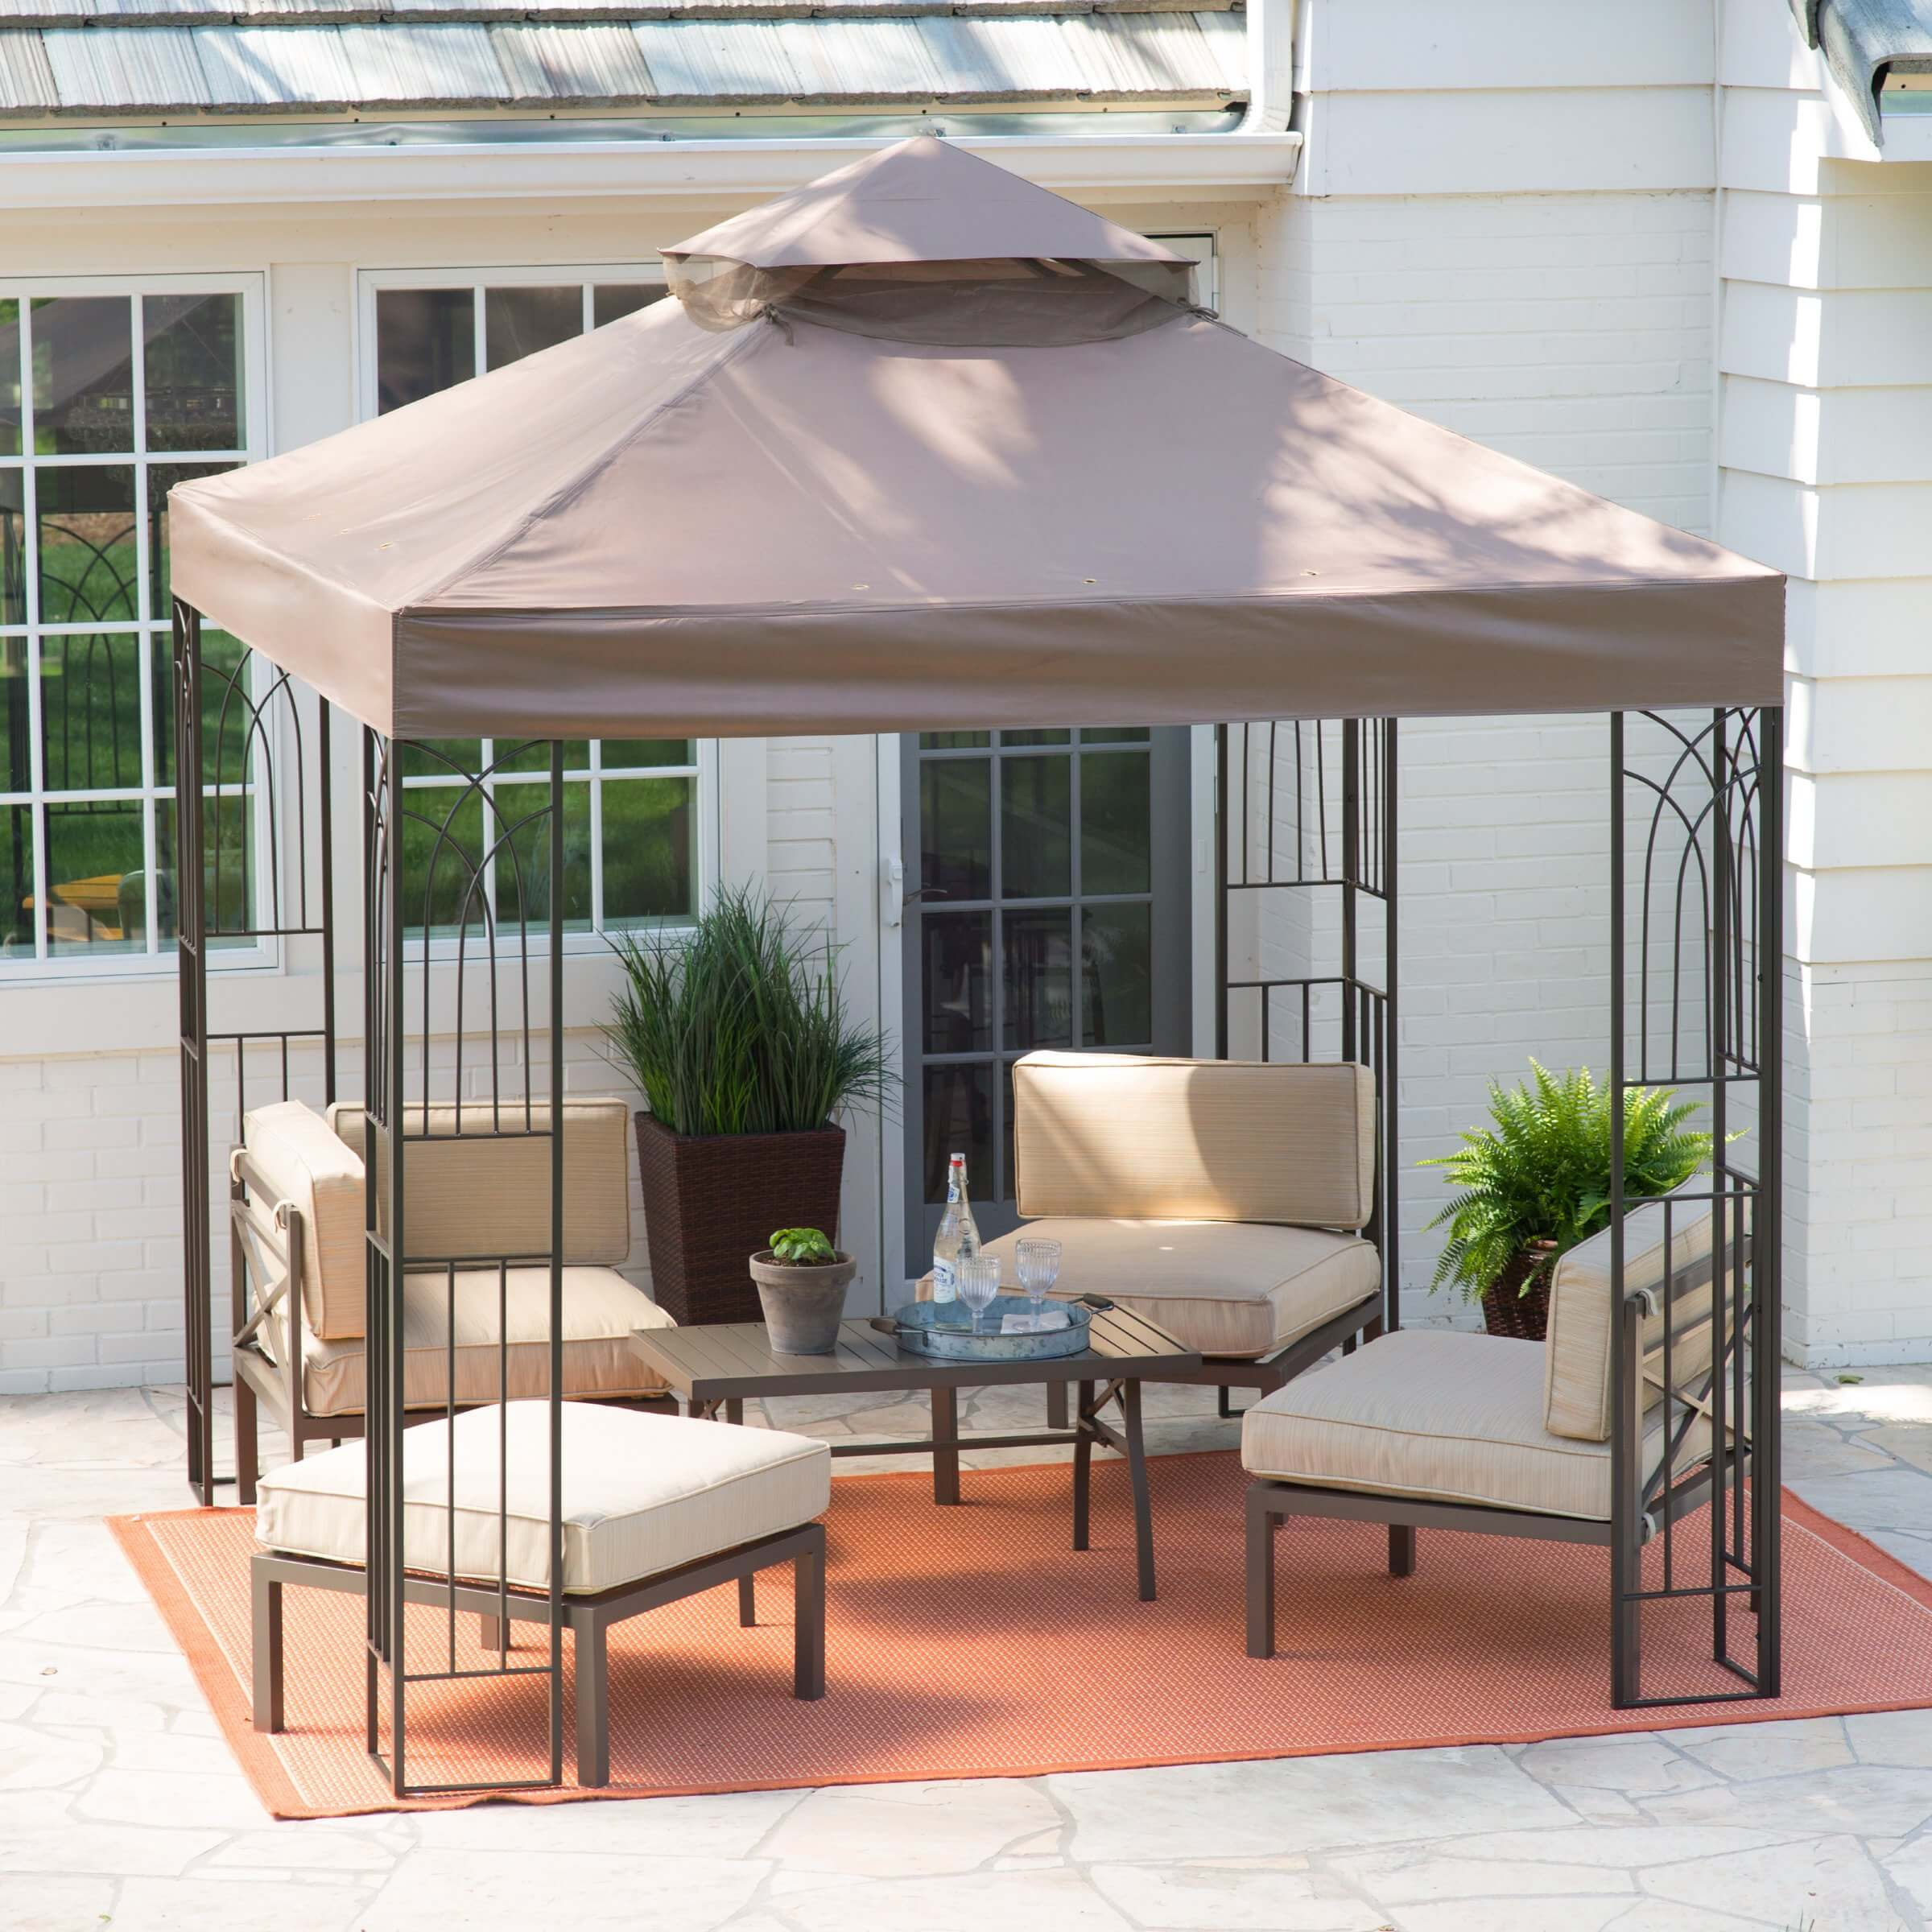 This gazebo is a simple and quality gazebo that will suit most needs. It is both mobile and lightweight so it can be transported without much trouble.